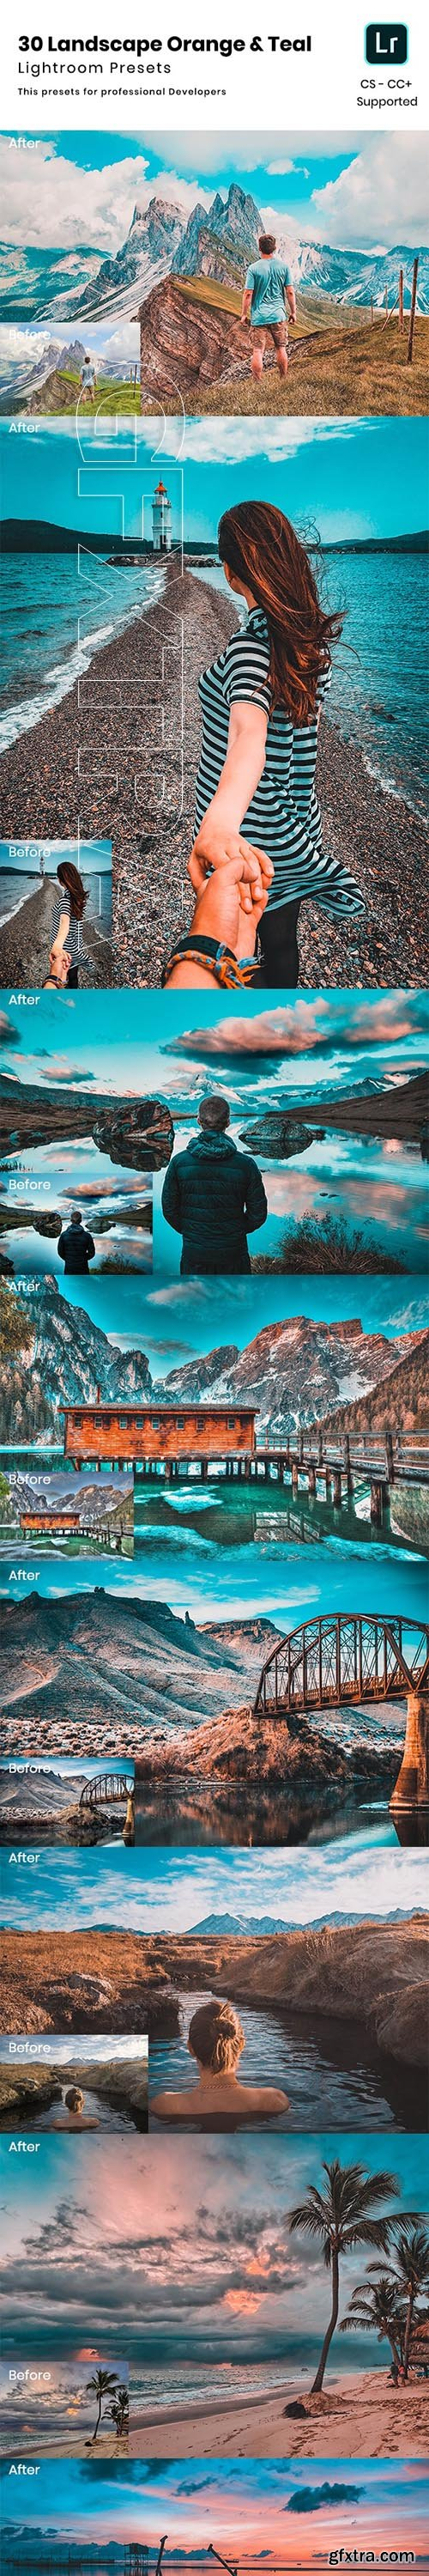 GraphicRiver - 30 Landscape Orange & Teal Lightroom Presets 24075640